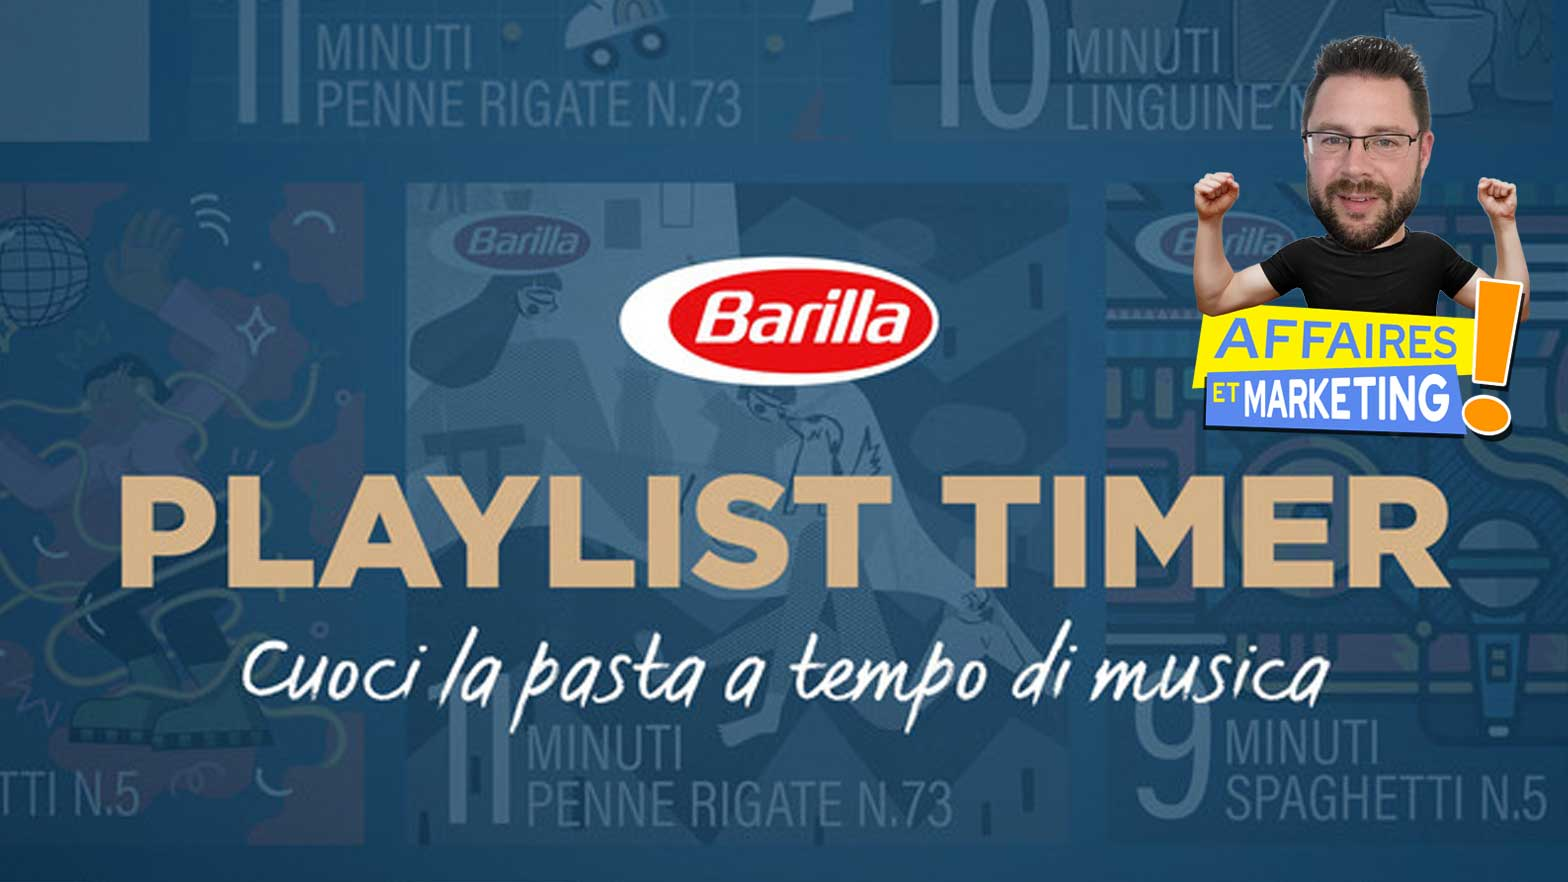 Barilla playlist